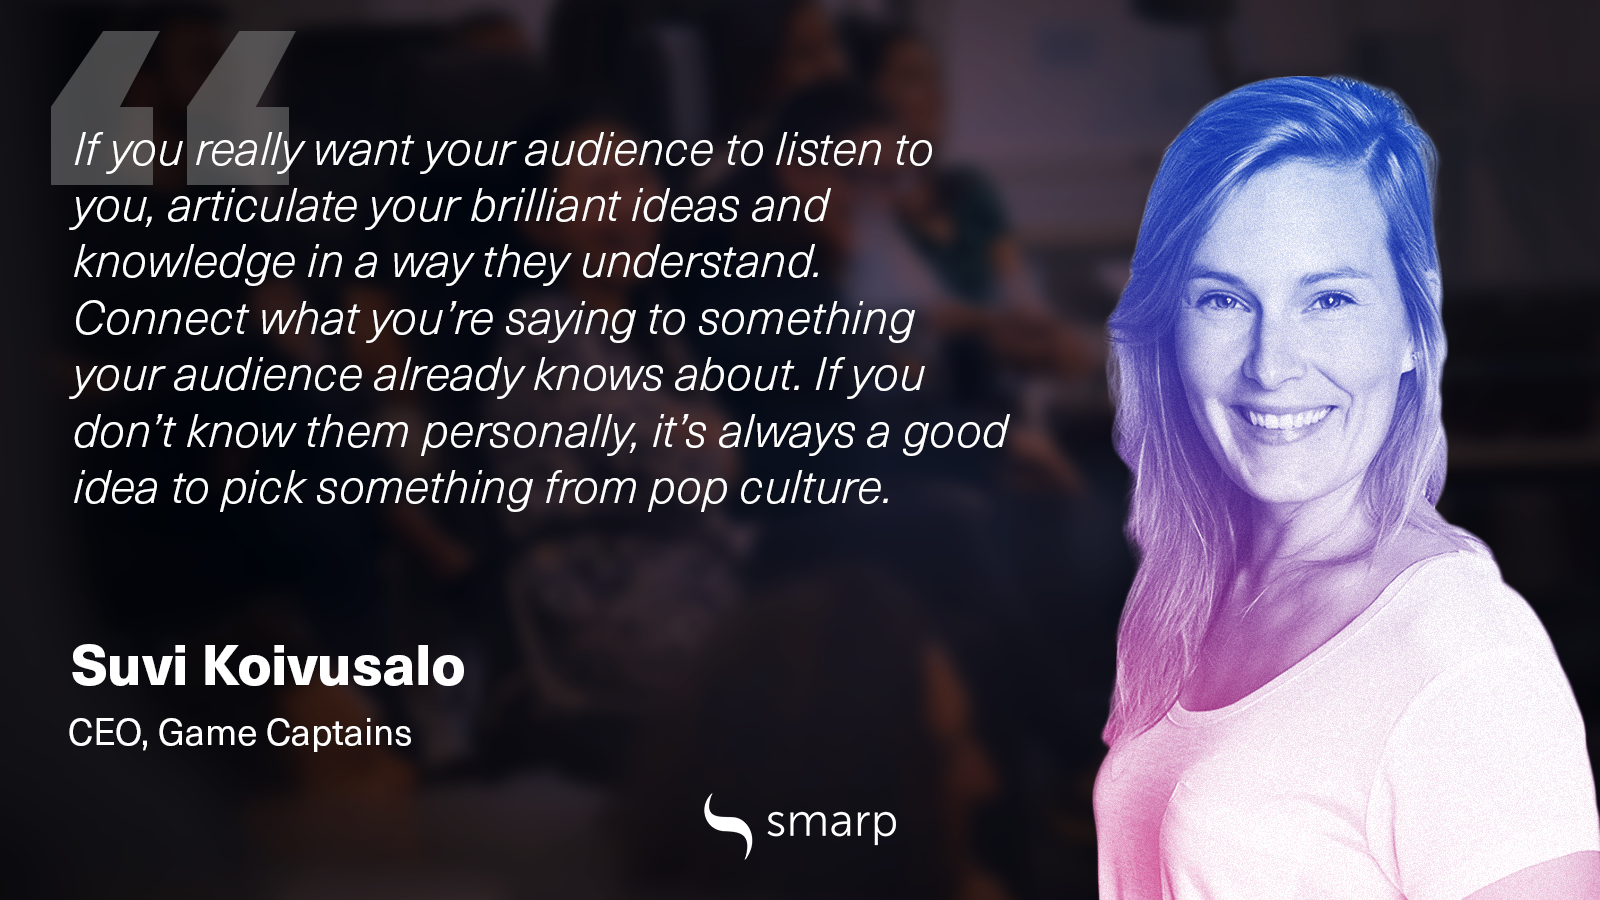 Suvi Koivusalo, Smarp, Game Captains, Internal Communications